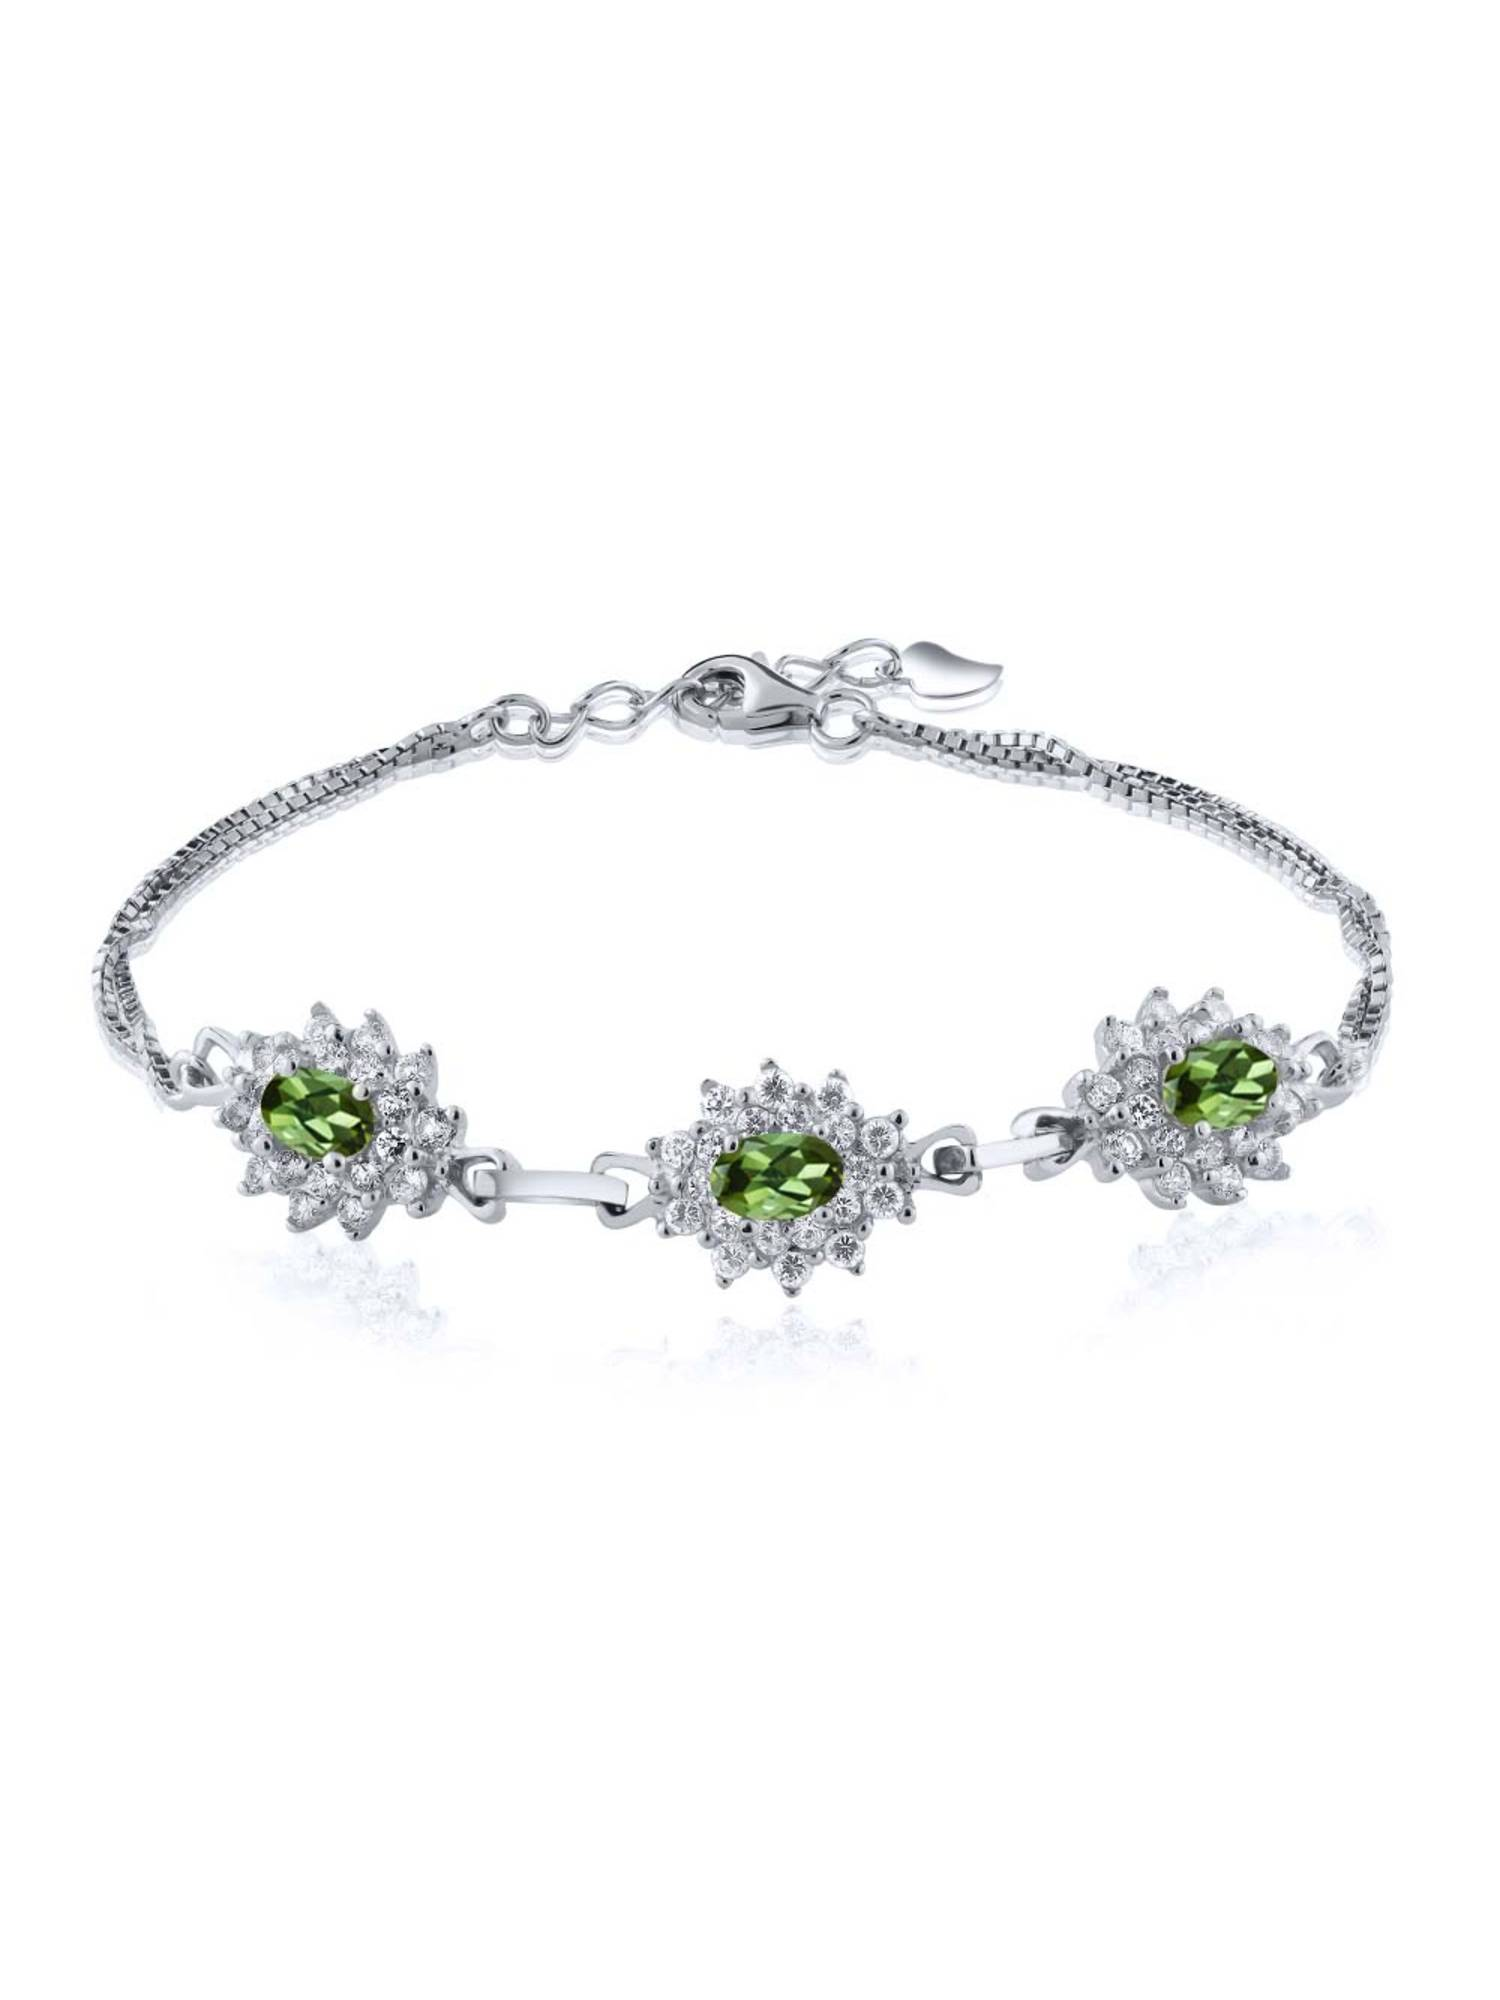 1.95 Ct Oval Green Tourmaline 925 Sterling Silver Bracelet by